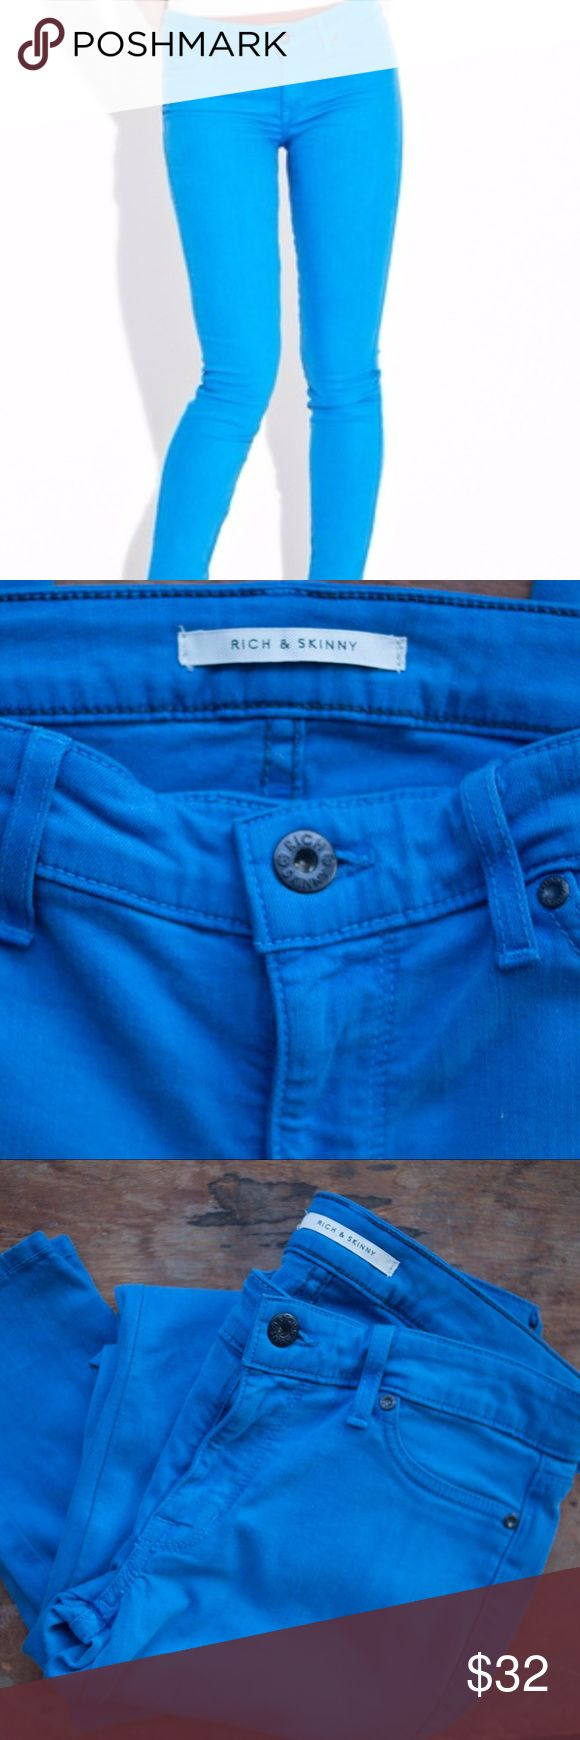 Rich & Skinny jeans royal blue skinny fit leg Rich & Skinny jeans, royal blue in color. These are excellent preowned condition, size 30. Inseam 29 inches. Rich & Skinny Jeans Skinny